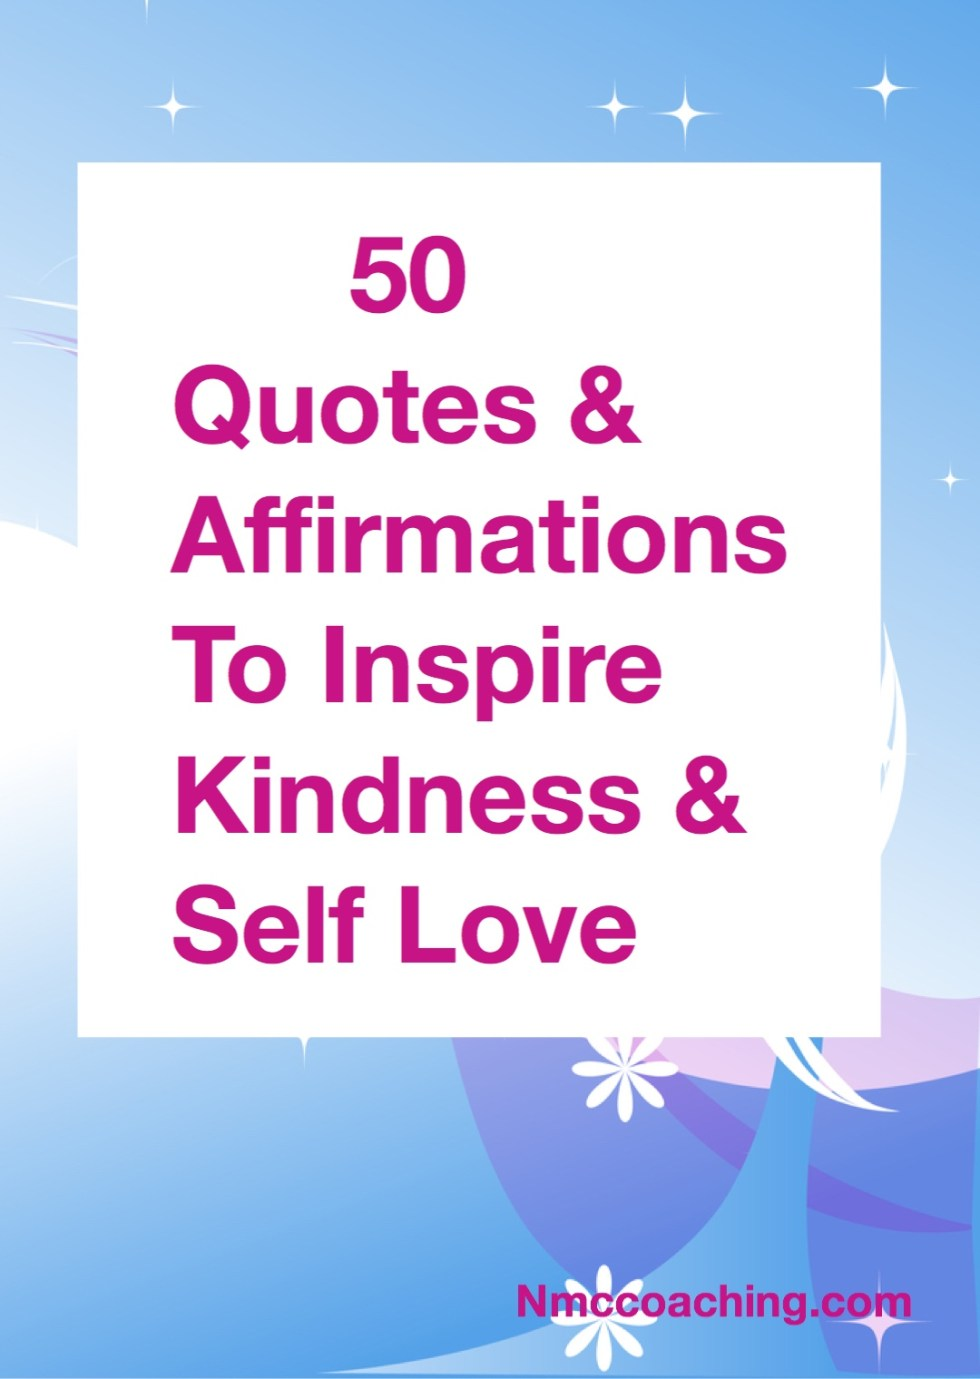 50 quotes and affirmations to inspire kindness and self love